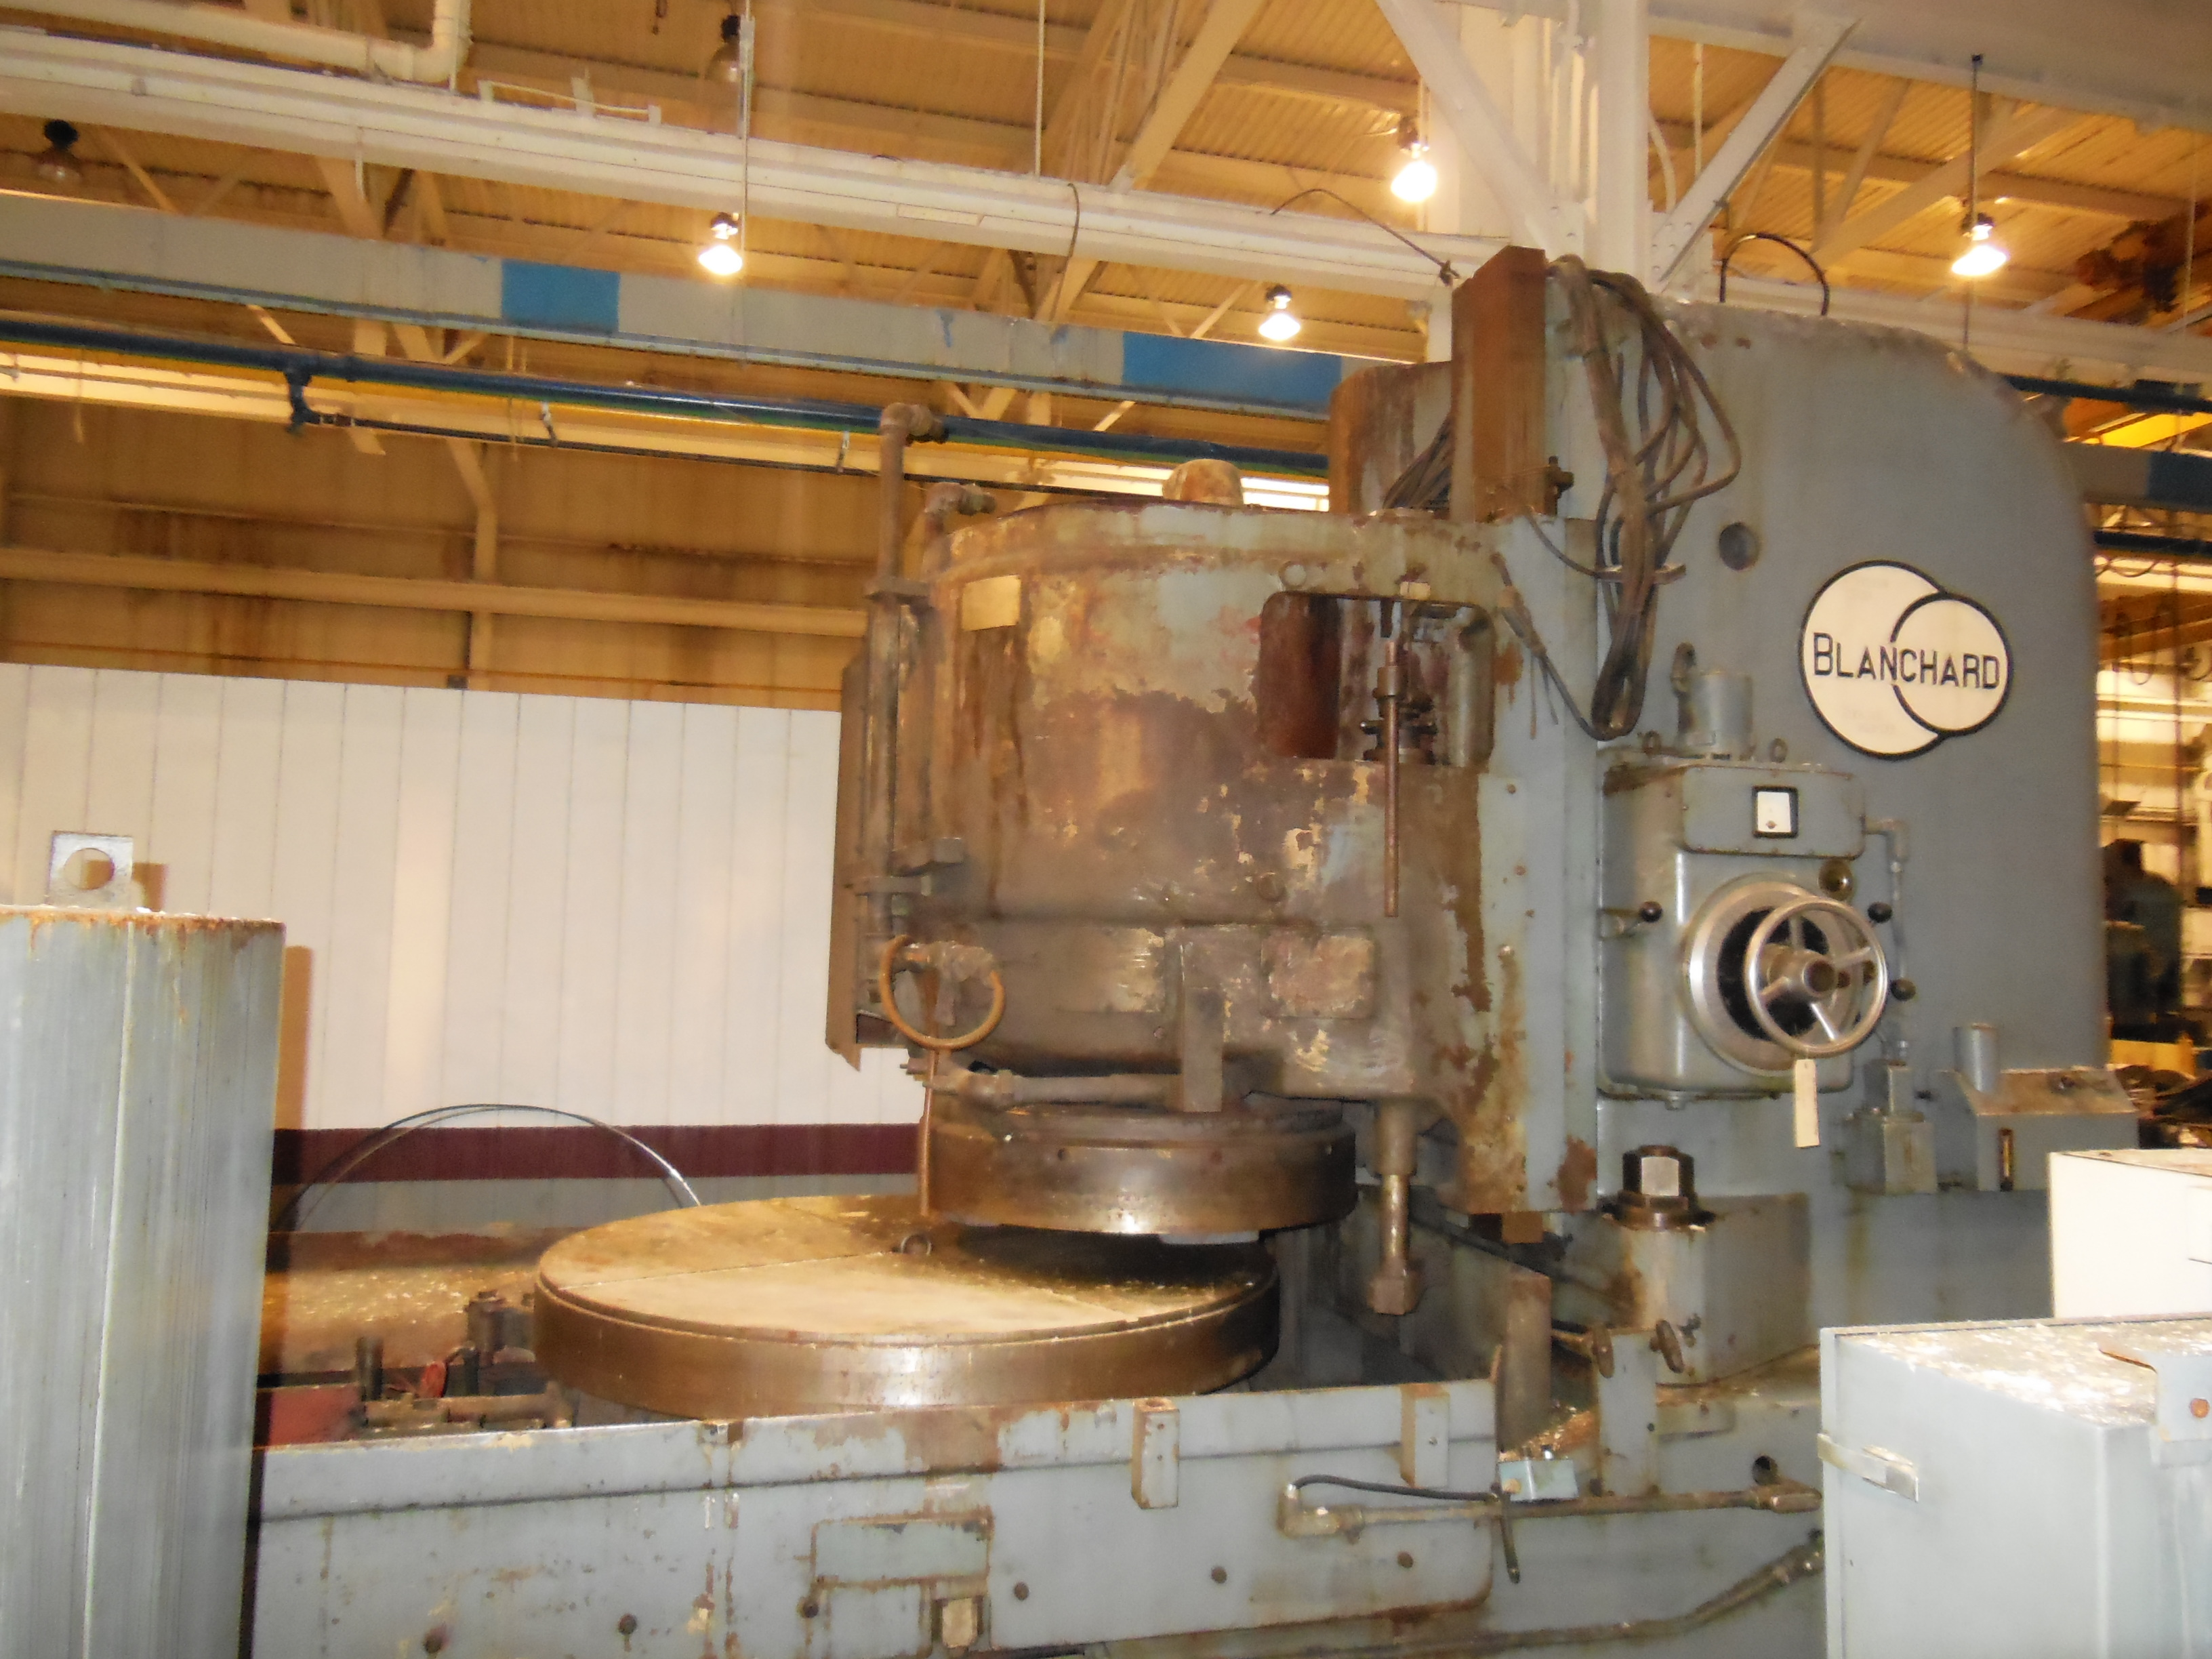 "60"" BLANCHARD ROTARY SURFACE GRINDER, MODEL 32-60, 60"" DIA. MAG CHUCK, 72"" SWING, 30"" VERT, 75 HP SPINDLE MOTOR, 1961, RECONDITIONED"